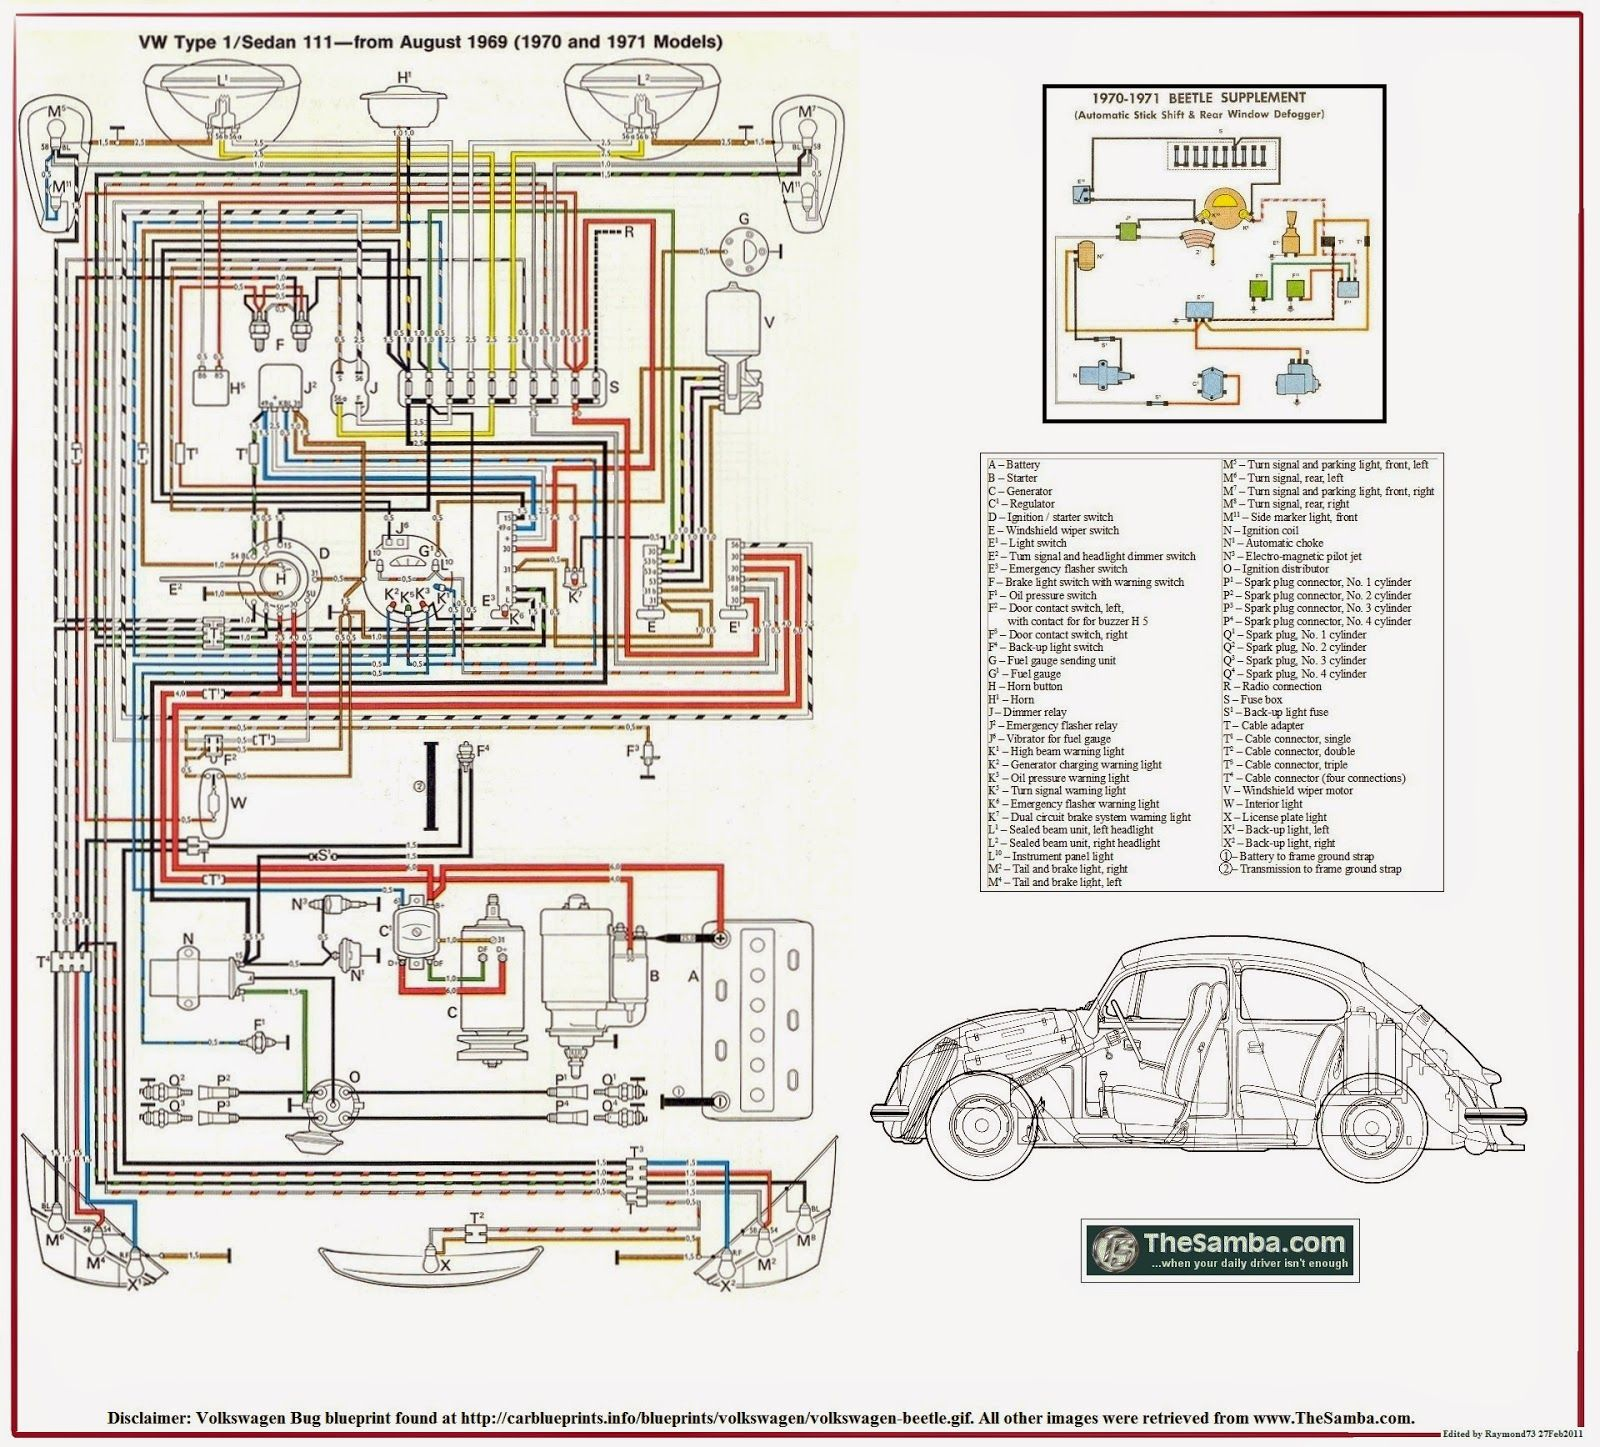 c42f7e50c6cd2df691326f8c1e5c6e97 urbi et orbi my bucket list journals volkswagen (vw) beetle 1972 volkswagen super beetle wiring harness at mifinder.co